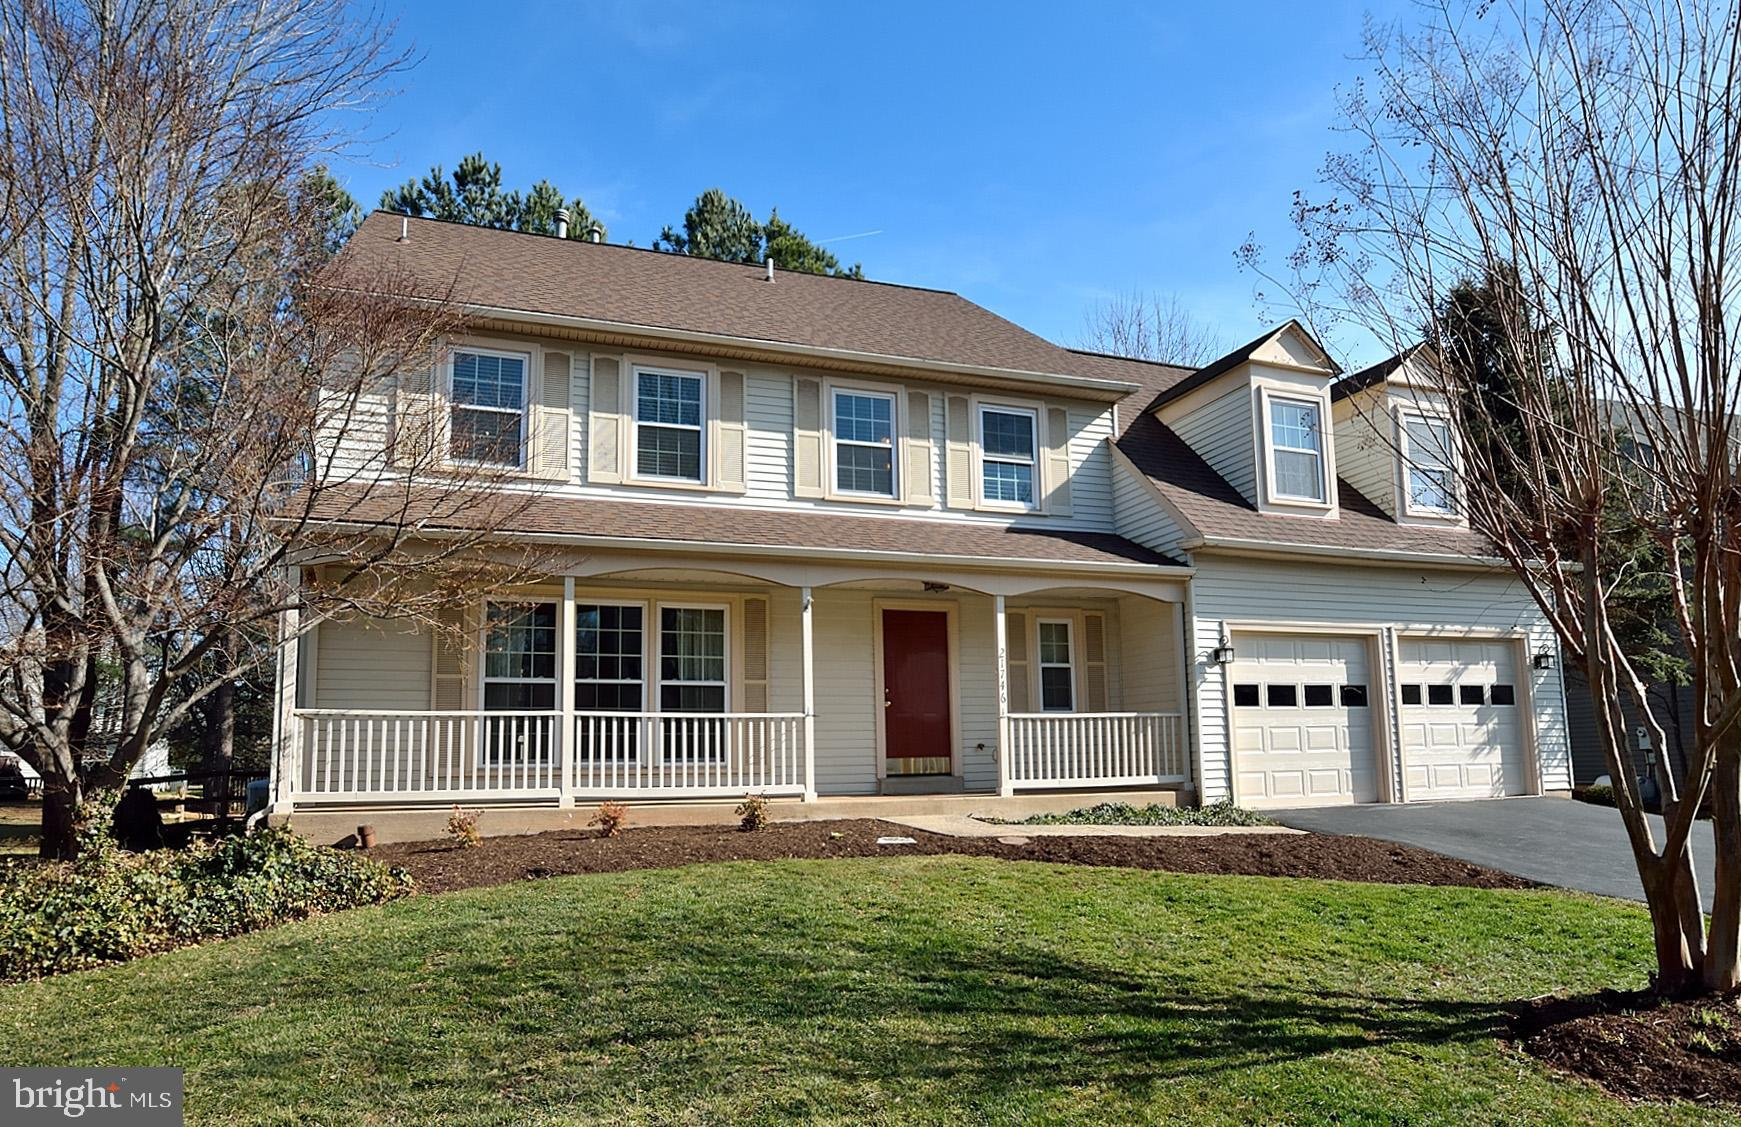 21746 ROLLING WOODS PLACE, STERLING, VA 20164